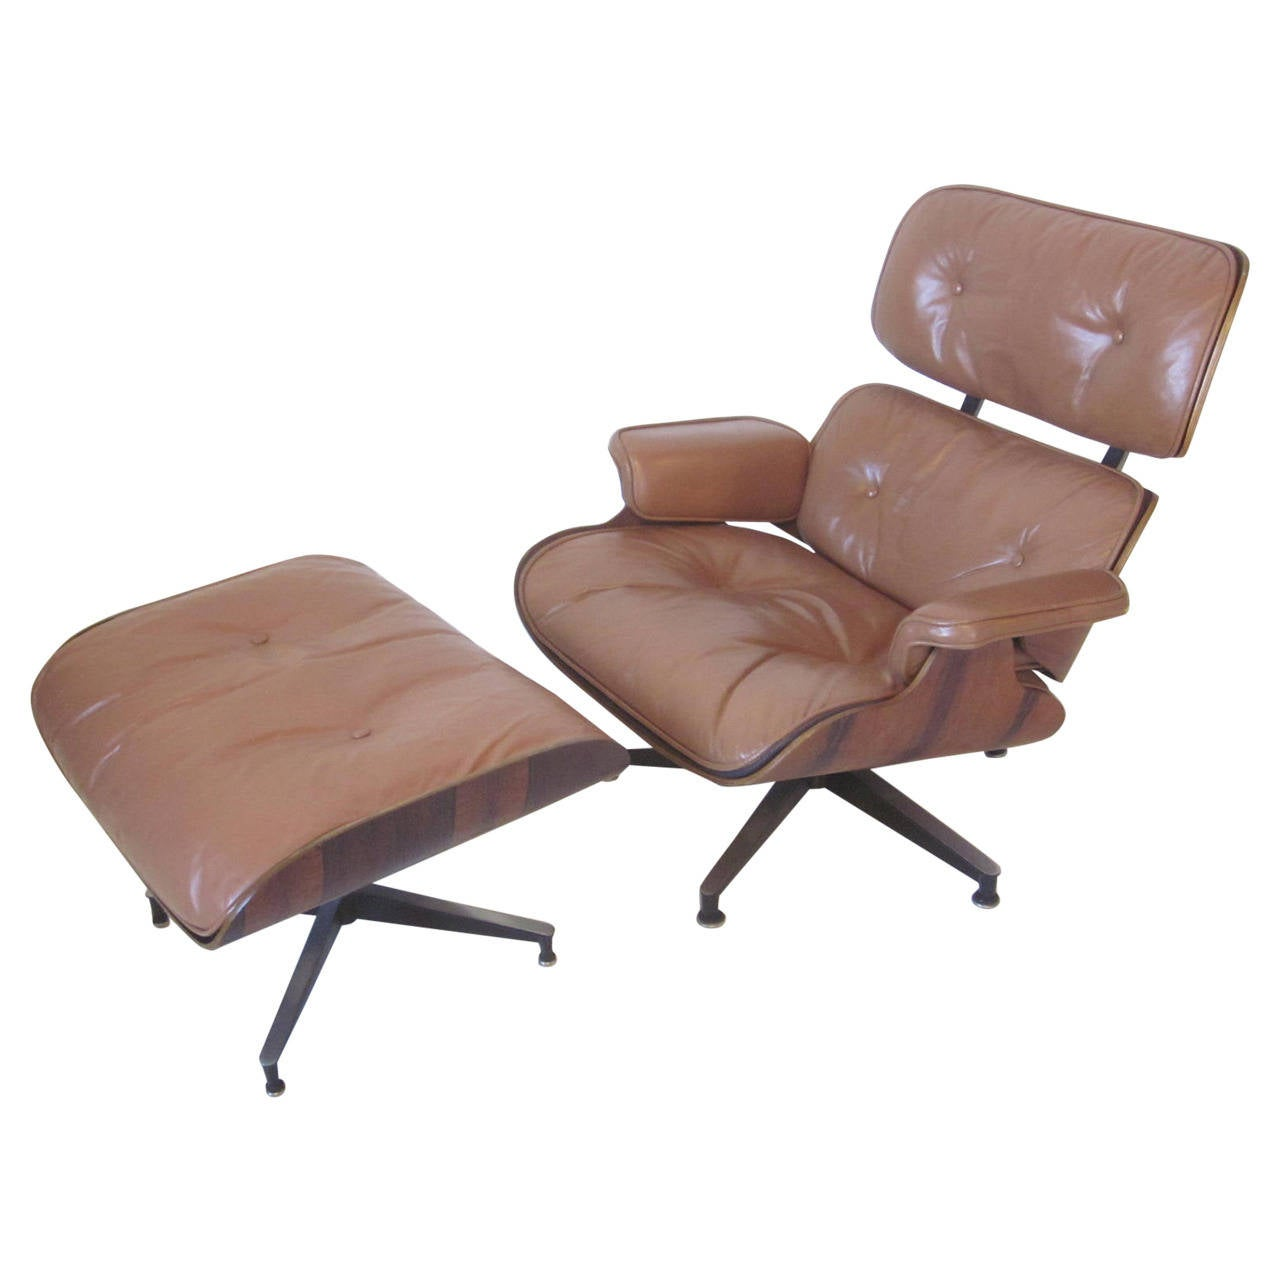 eames 670 lounge chair and ottoman at 1stdibs. Black Bedroom Furniture Sets. Home Design Ideas